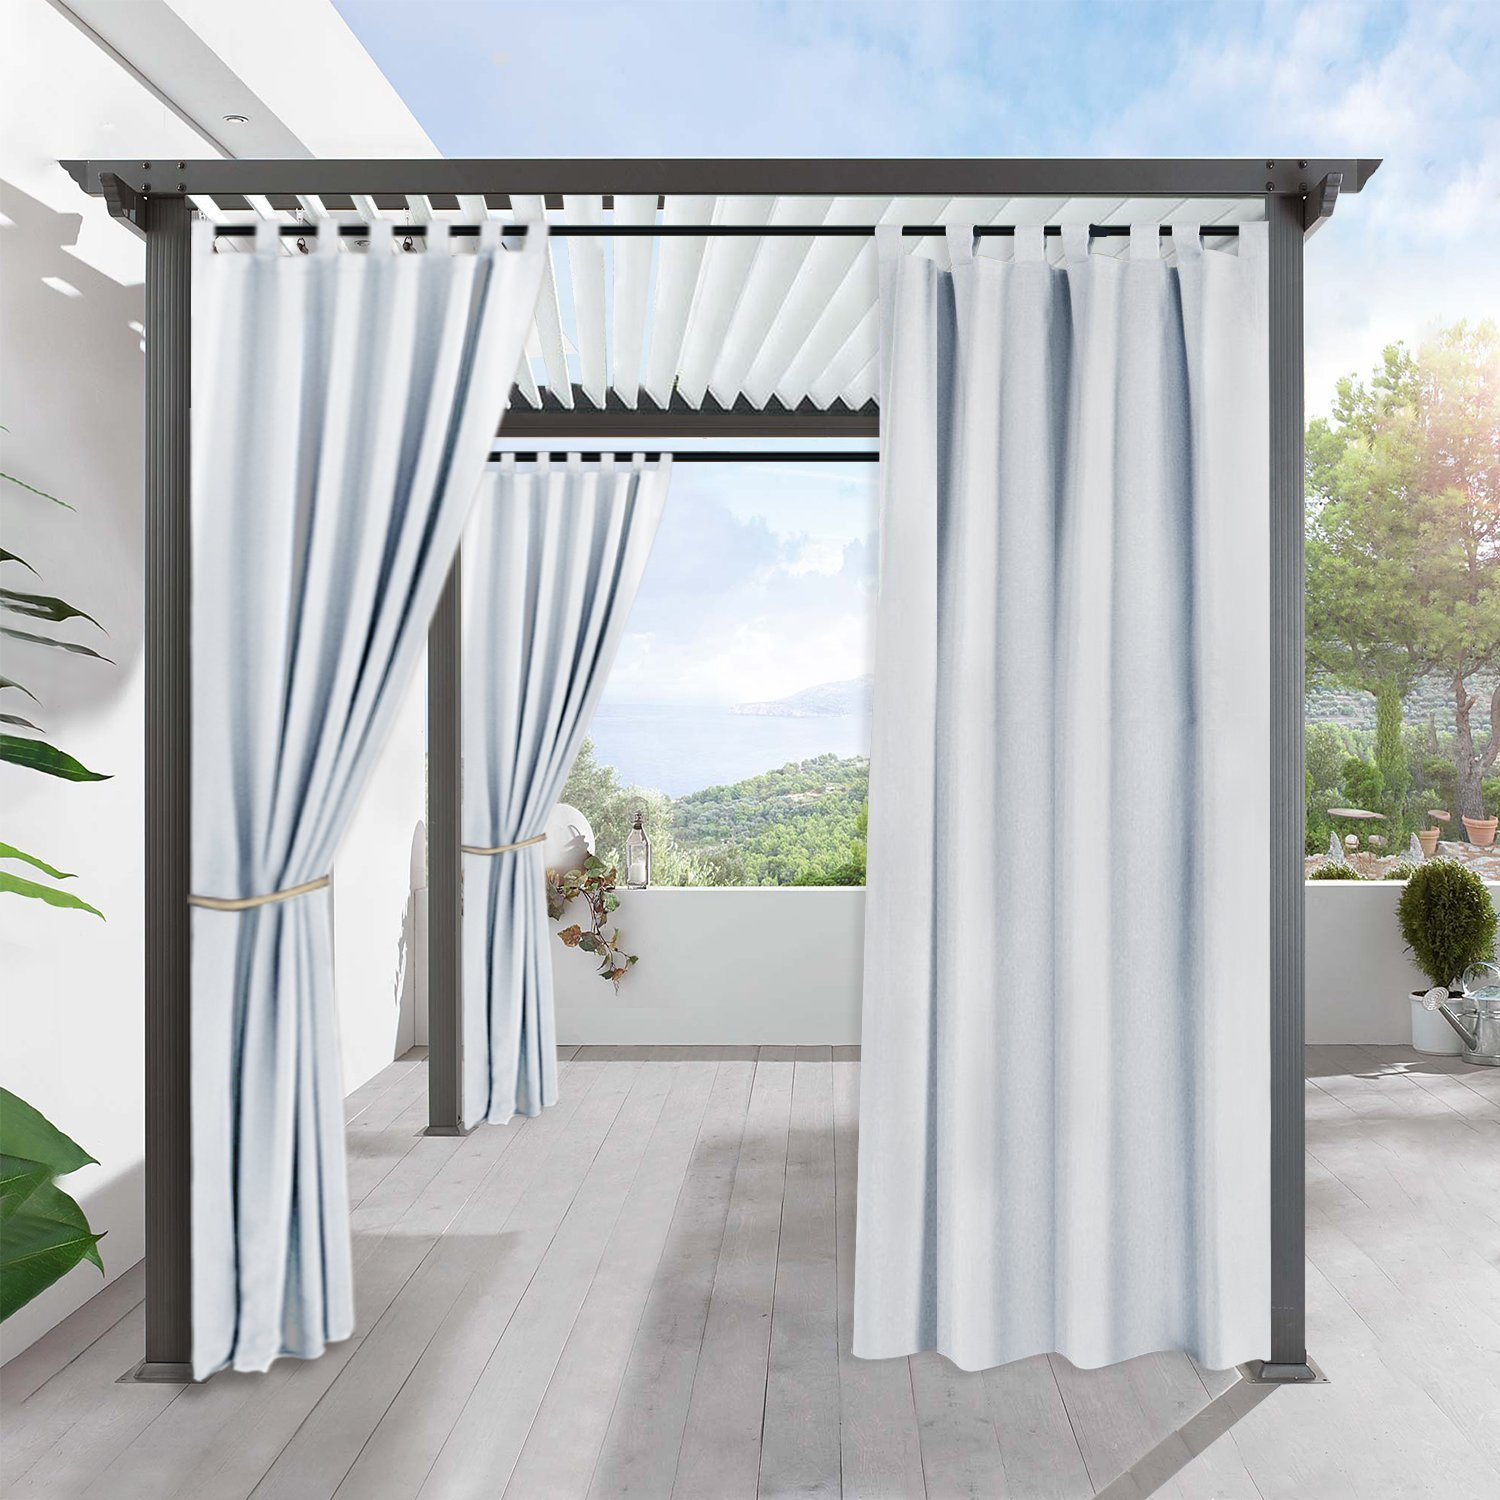 Outdoor Indoor Patio Curtain Drapes - RYB HOME Mildew Resistant Water Repellent Reduce Heat Loss Tab Top Blackout Curtains for Porch, 1 Piece, W 52 x L 84 In, Greyish White by RYB HOME (Image #3)